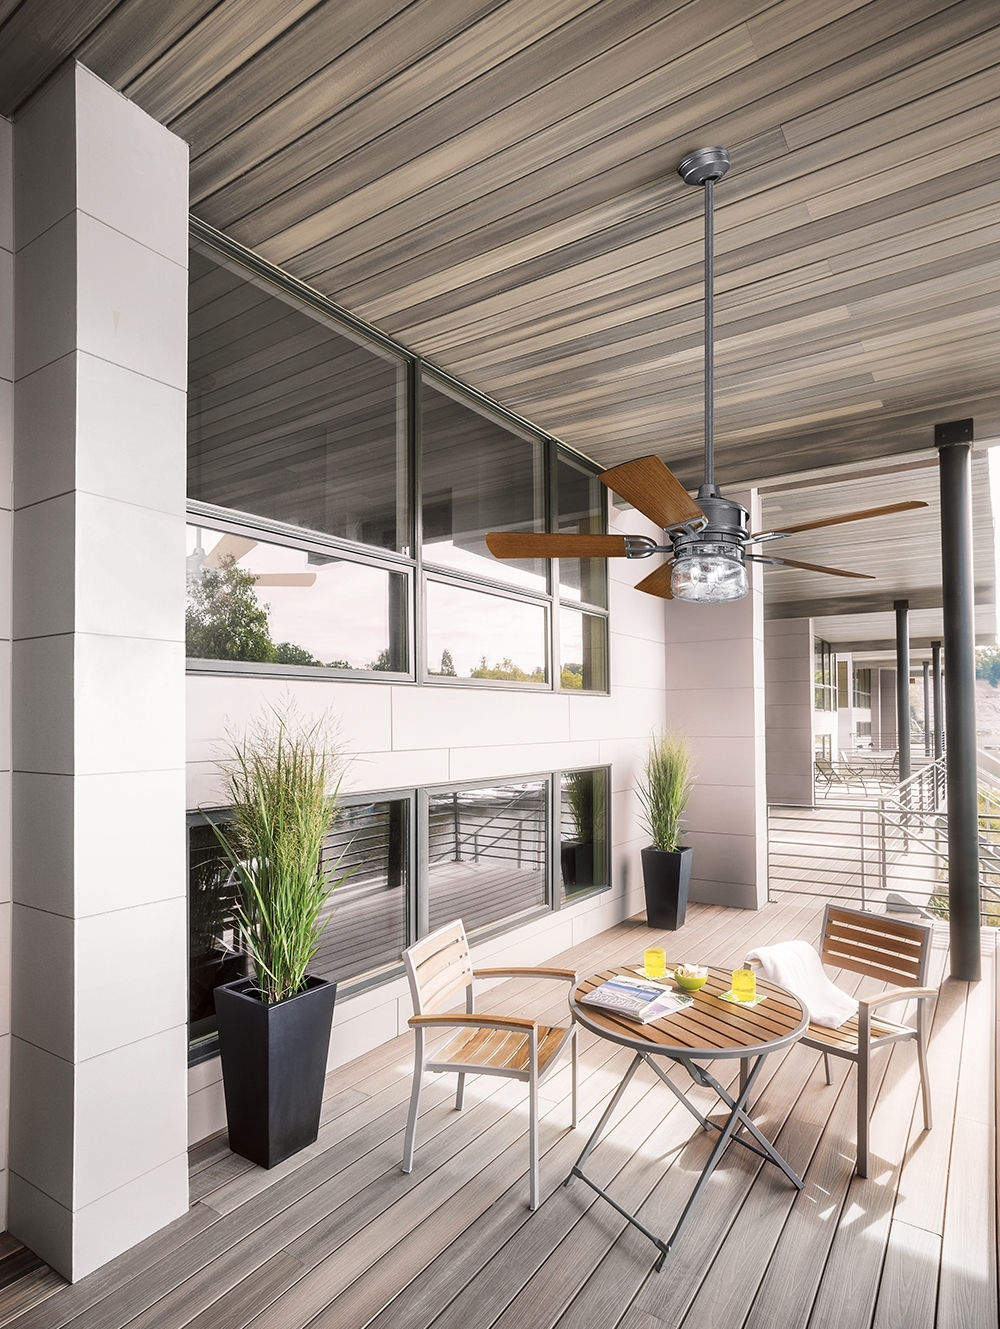 Recent Kichler Outdoor Ceiling Fans – Photos House Interior And Fan Throughout Outdoor Patio Ceiling Fans With Lights (View 18 of 20)